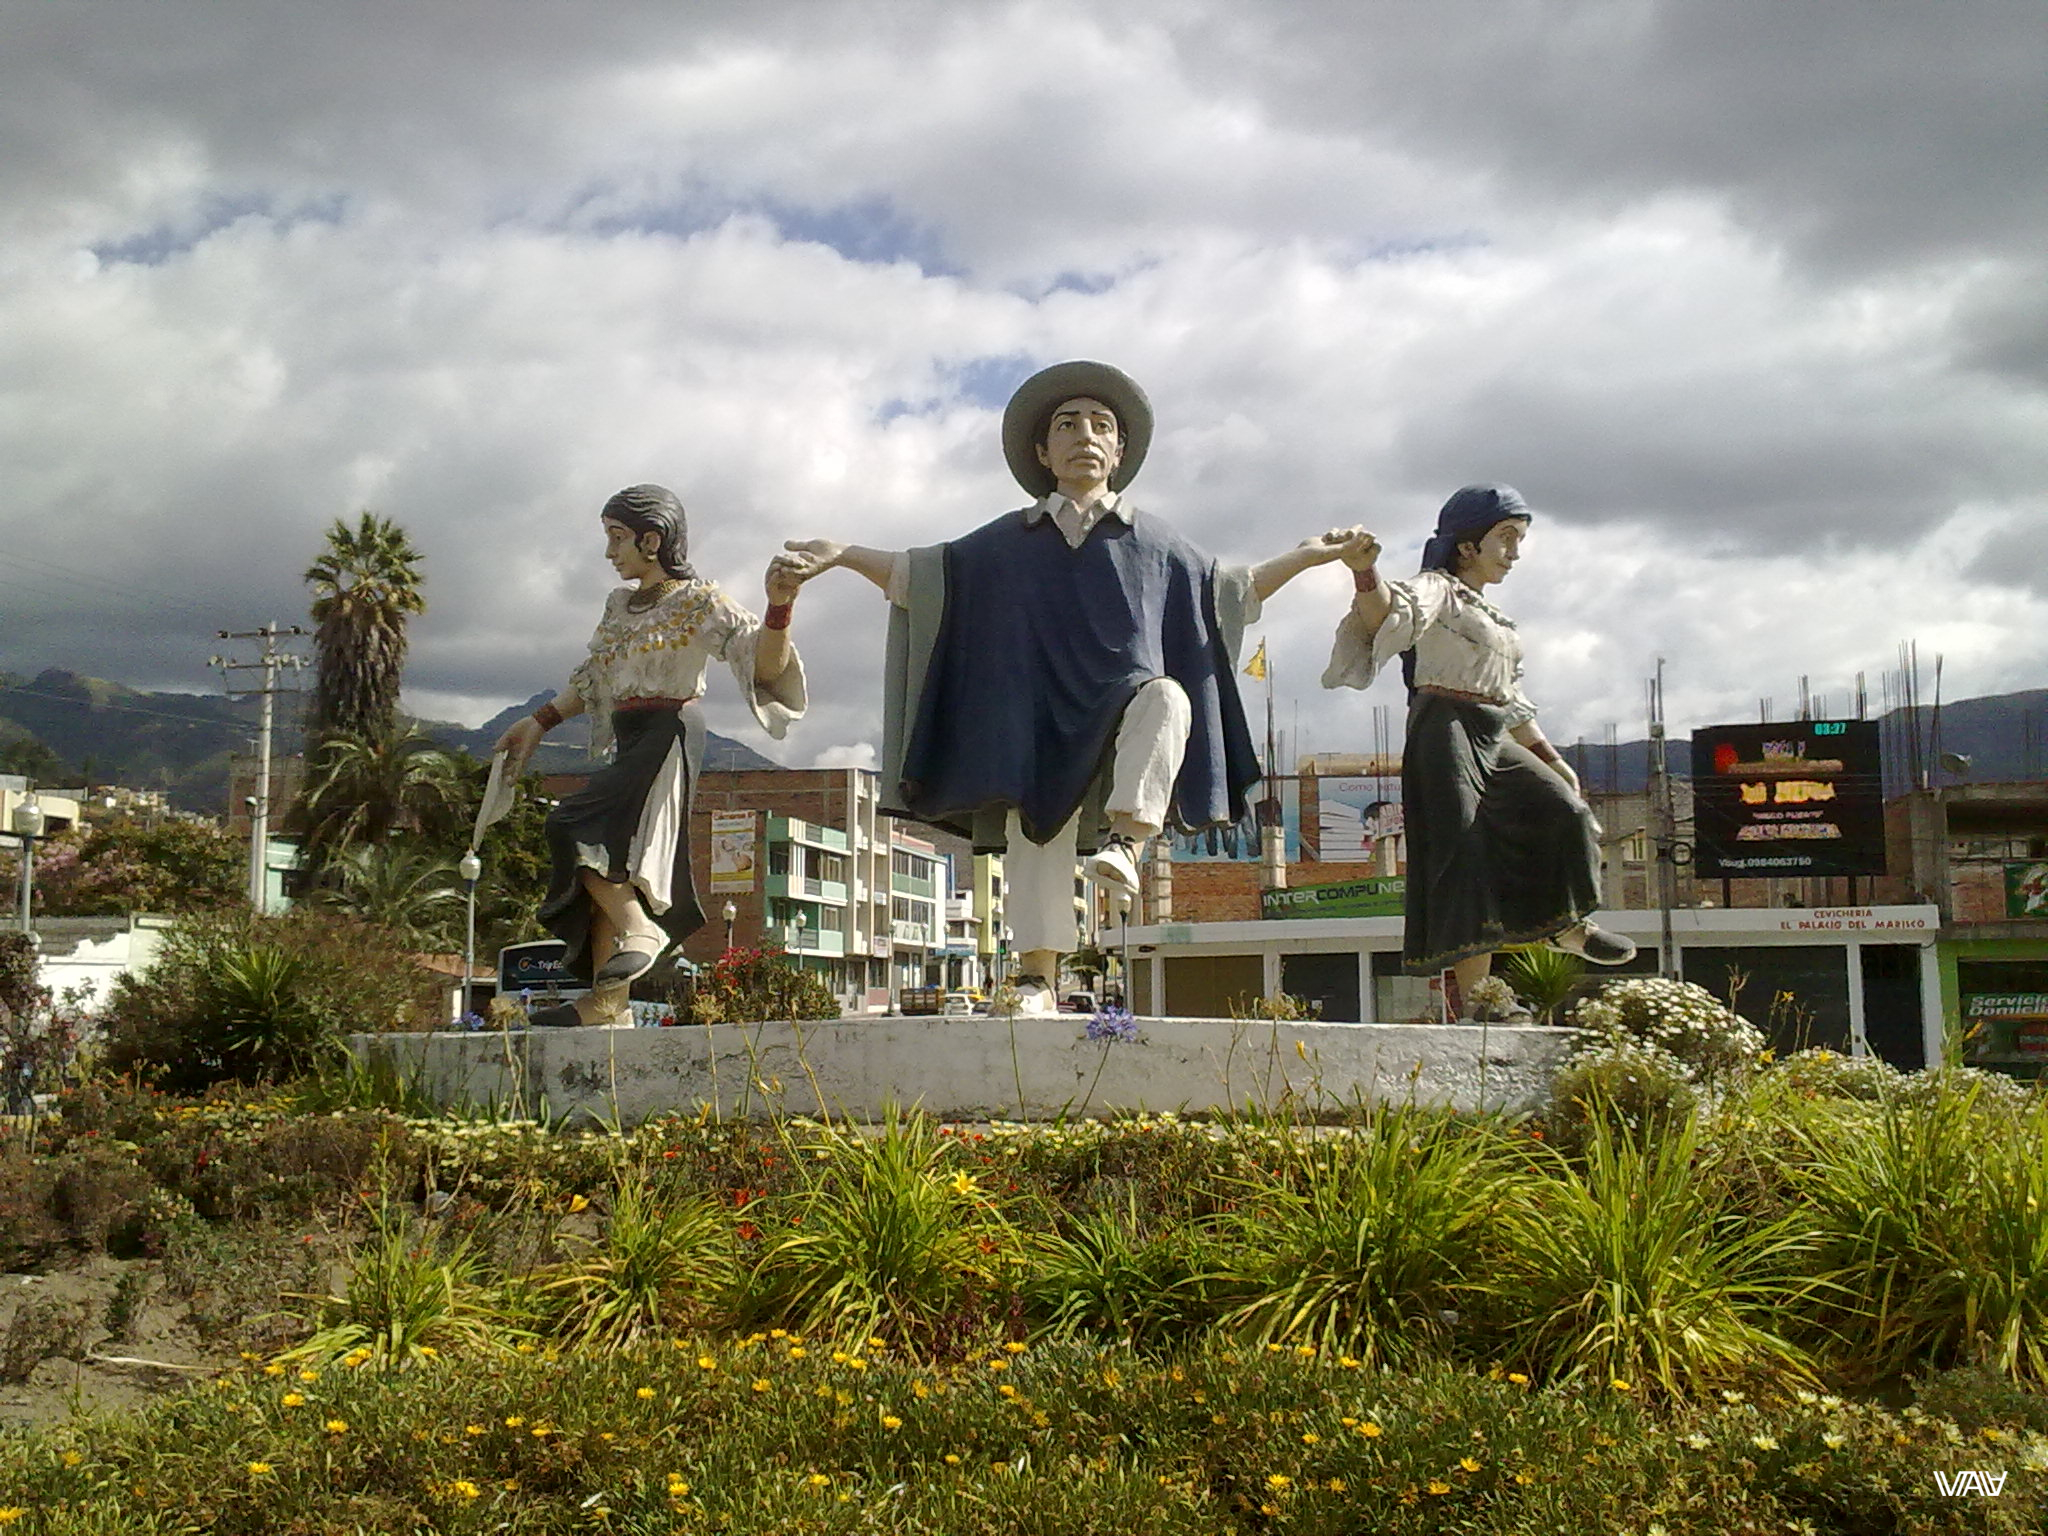 Main unique city statues symbolizing the unity of the Ecuadorian multinational people.